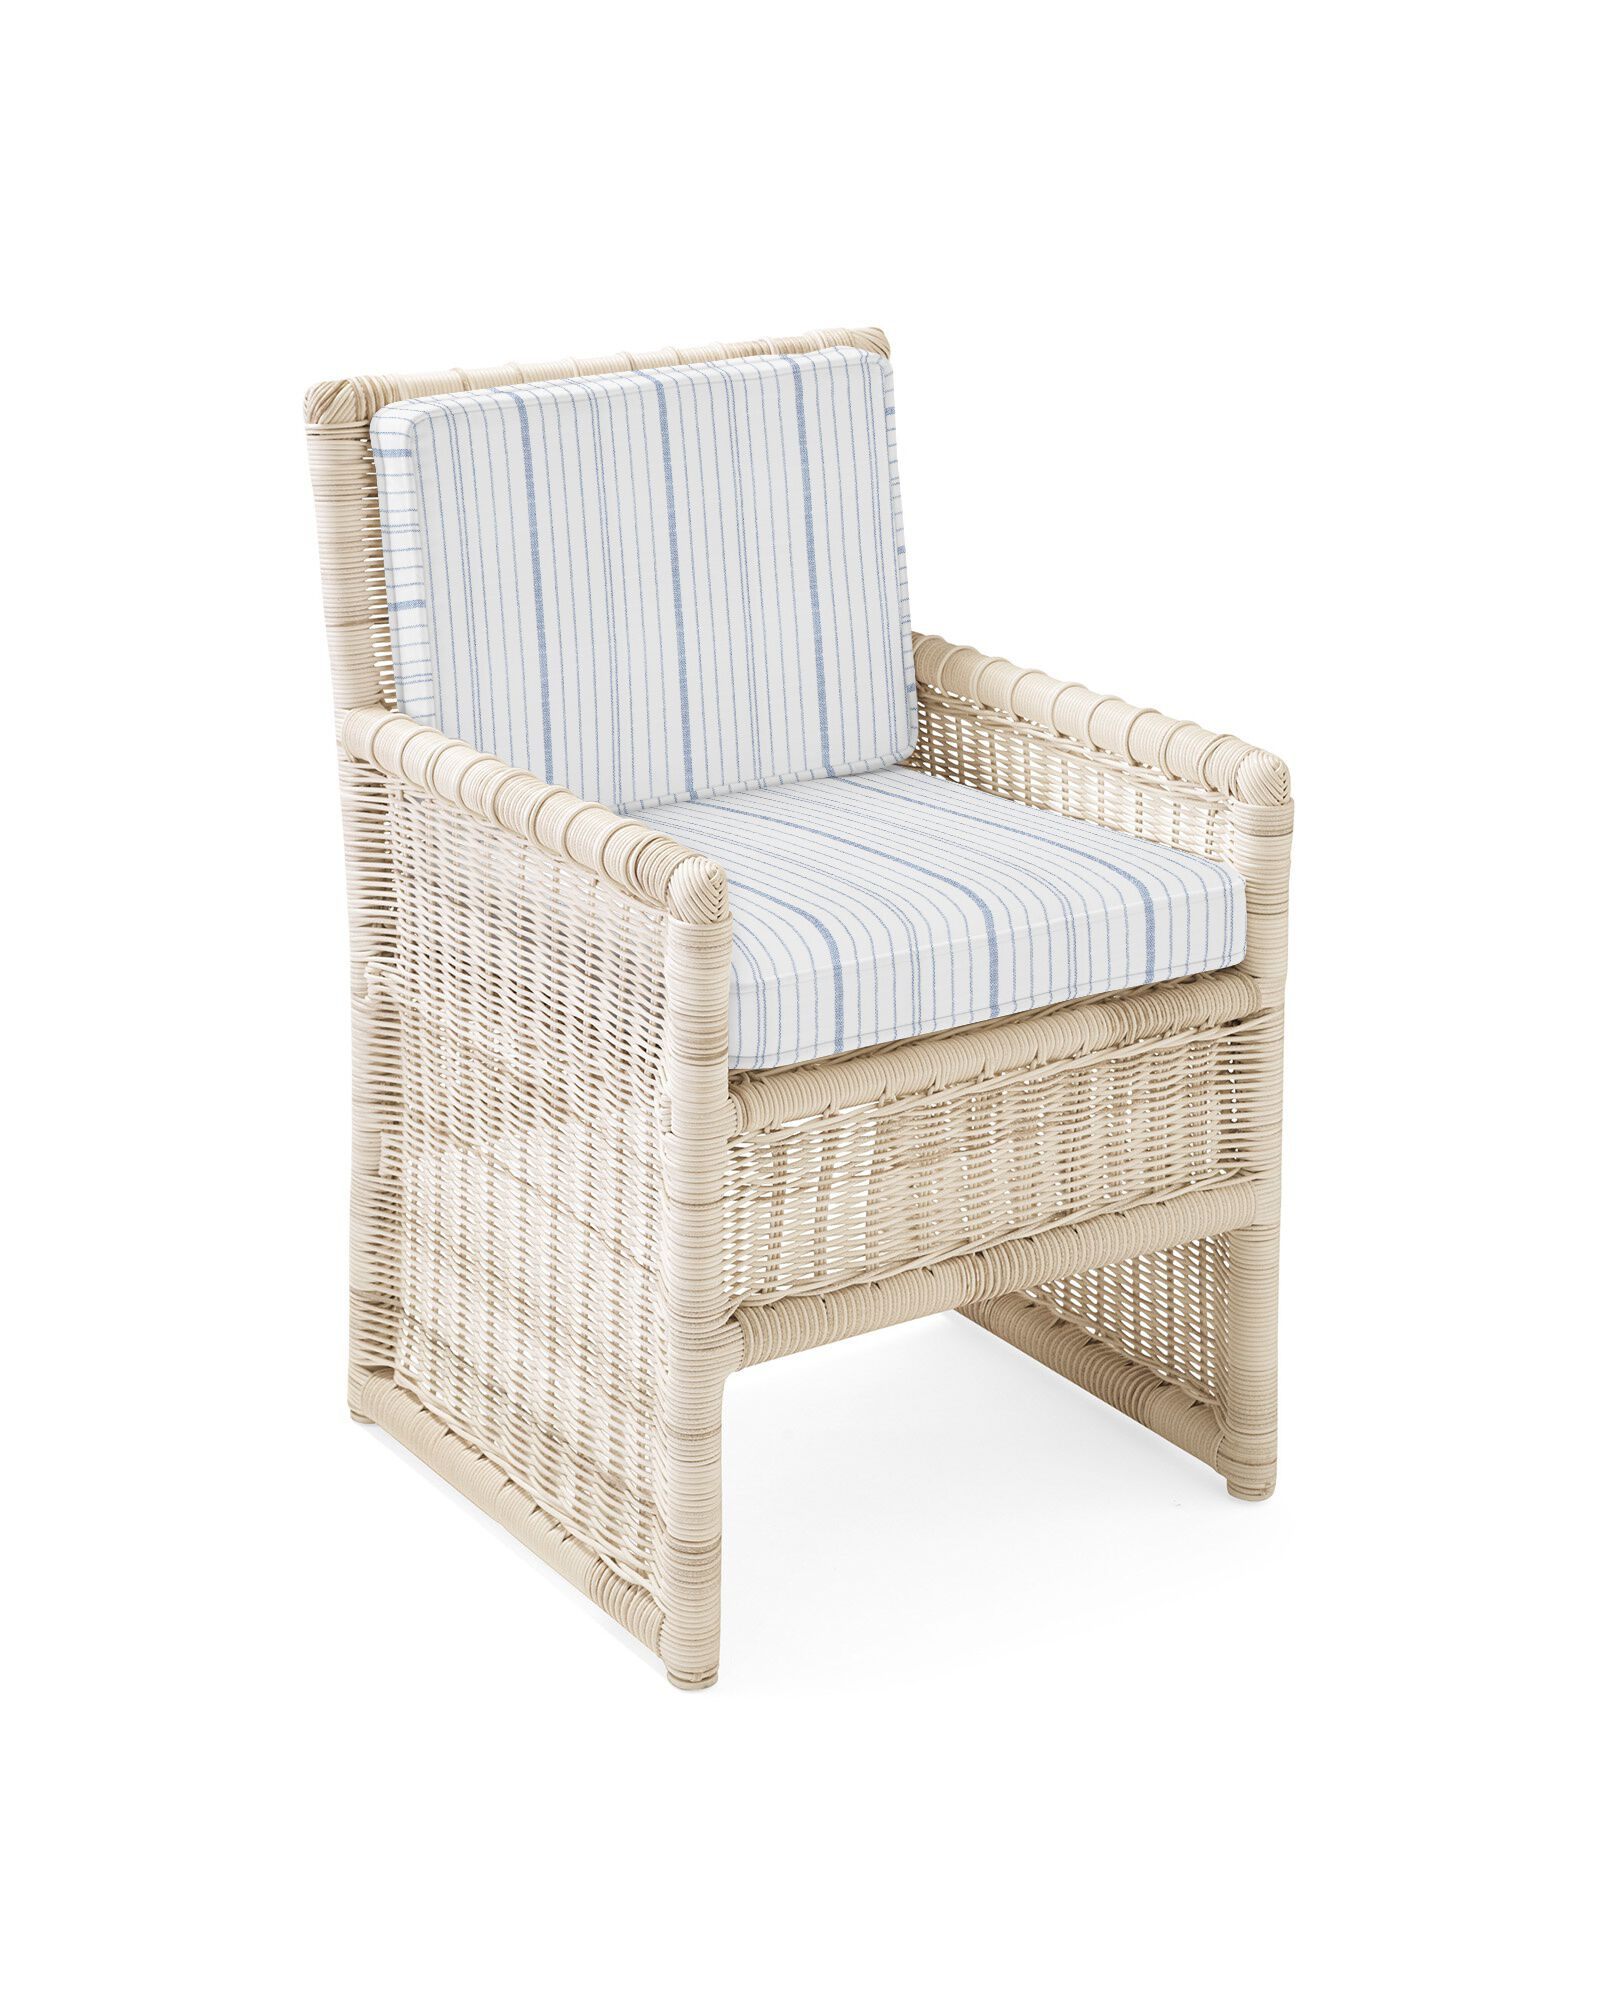 Cushion Cover for Pacifica Dining Chair, Surf Stripe Navy